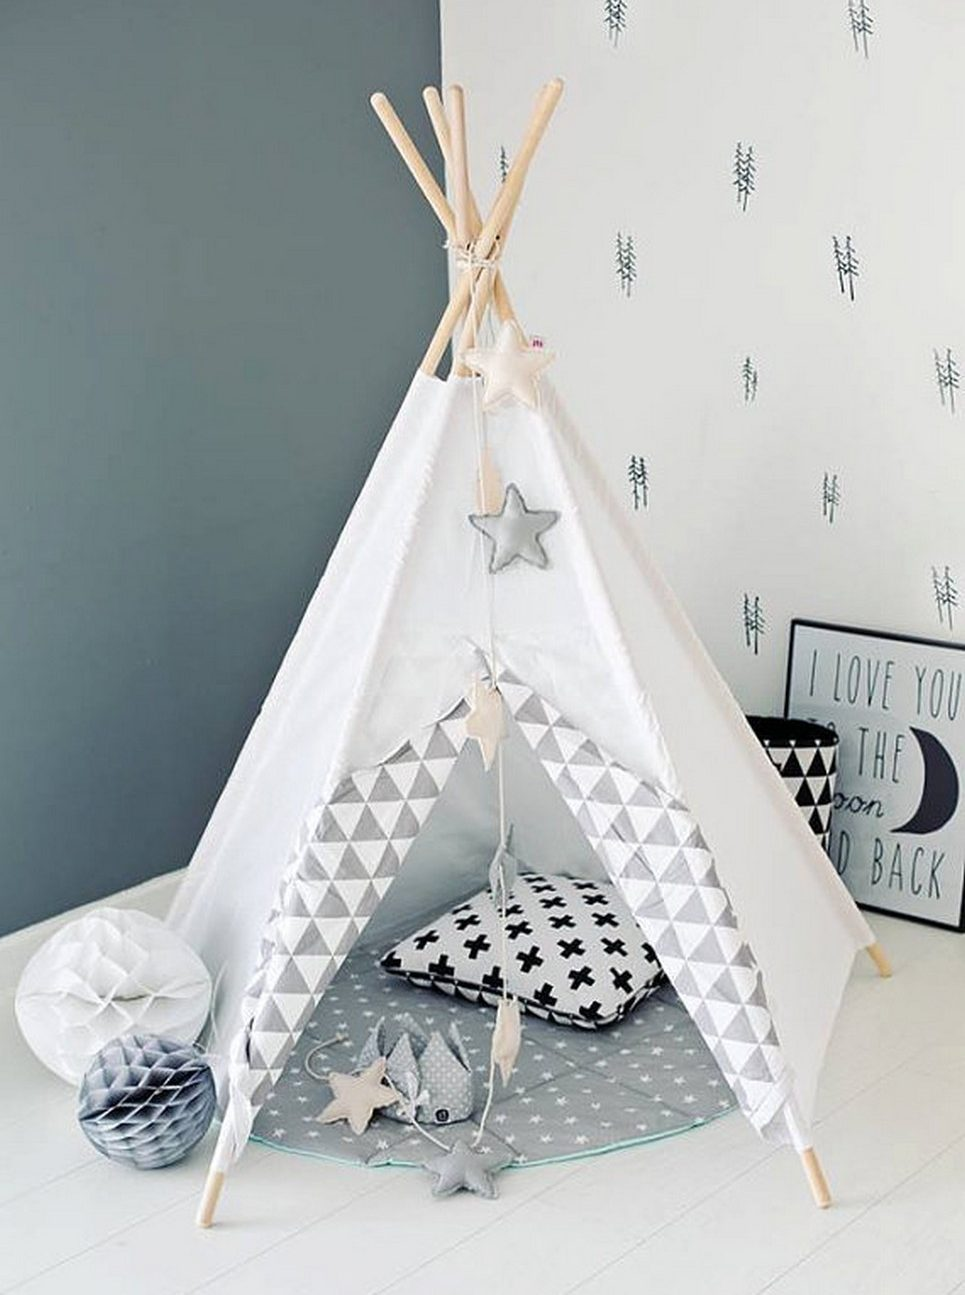 White Mist Children's Play Teepee